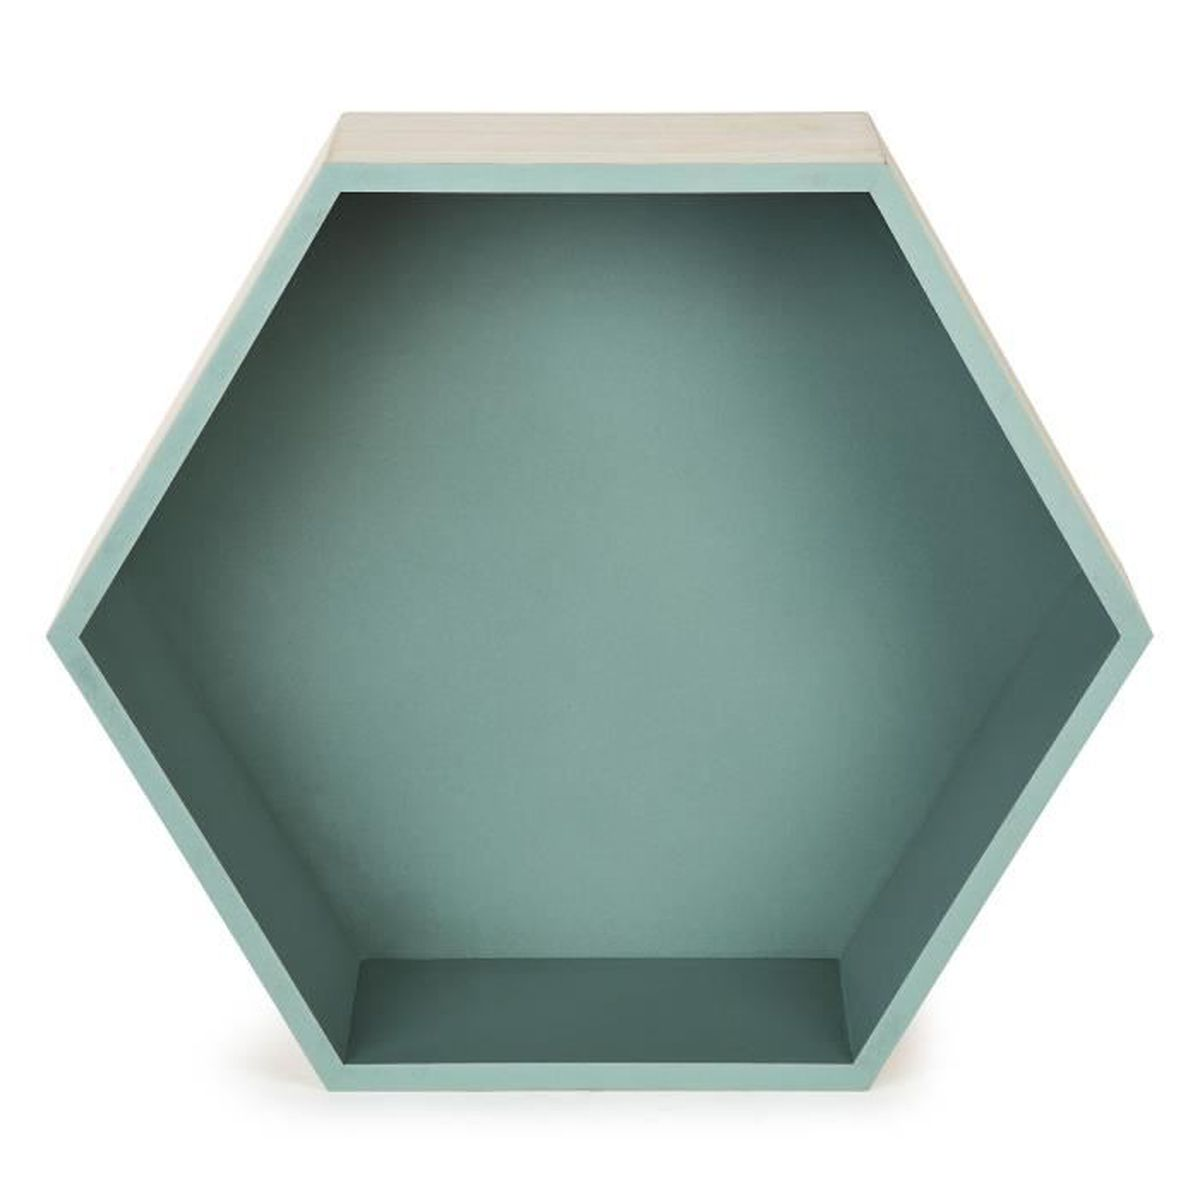 rush tag re hexagonale moyen mod le vert achat. Black Bedroom Furniture Sets. Home Design Ideas